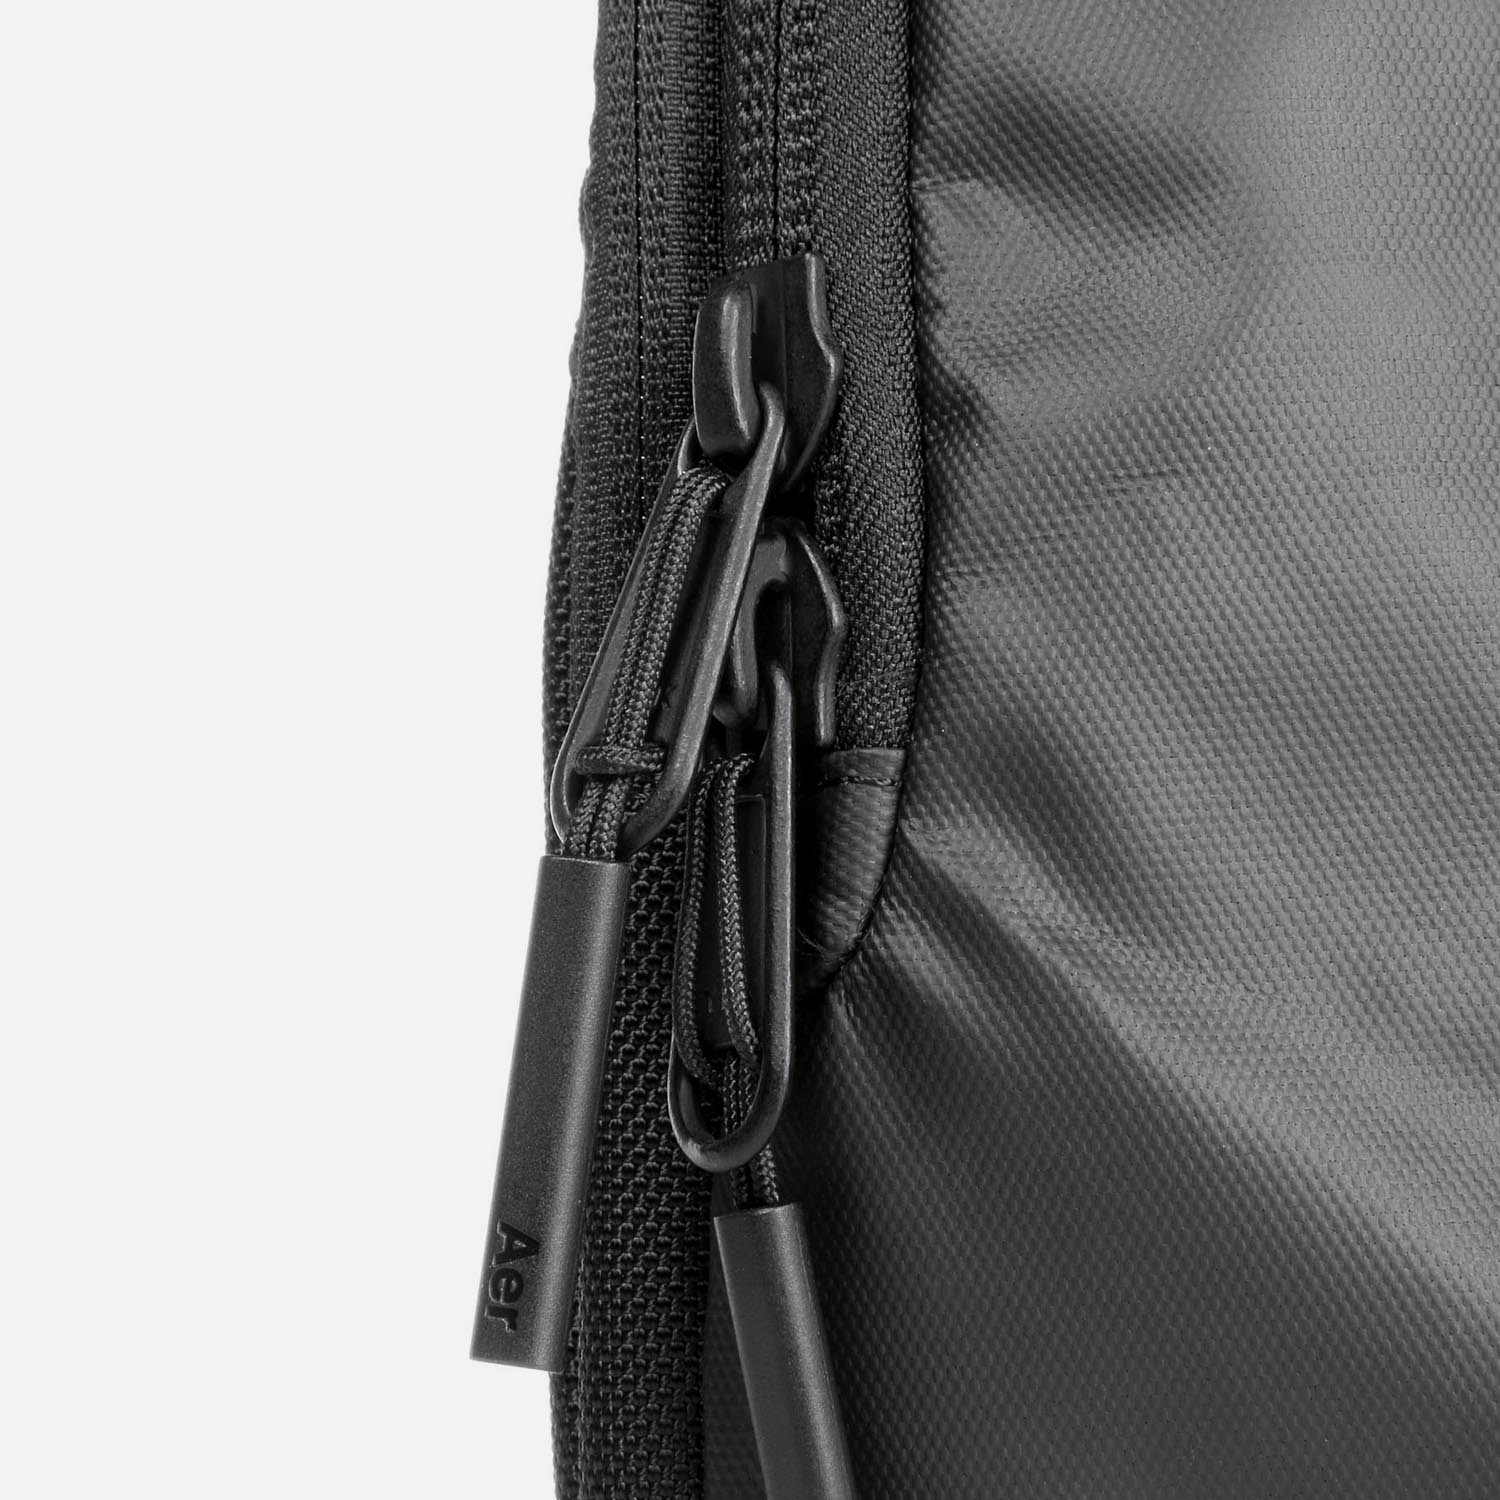 31005_techsling_black_zippers.JPG